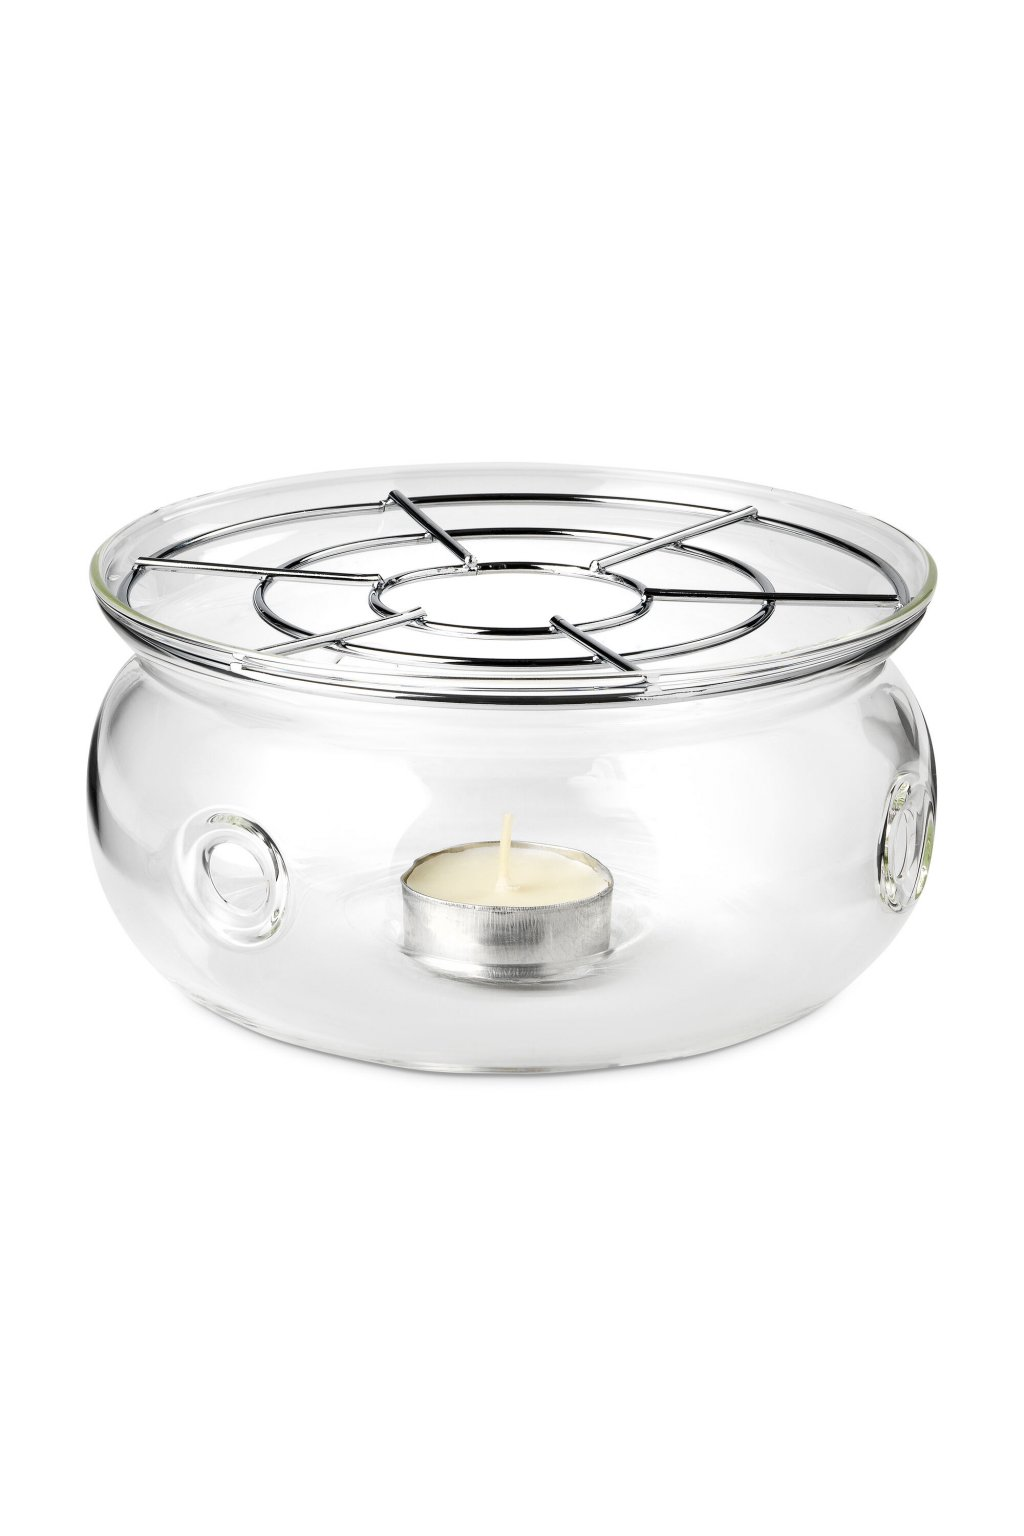 331355 glass teapot warmer 1